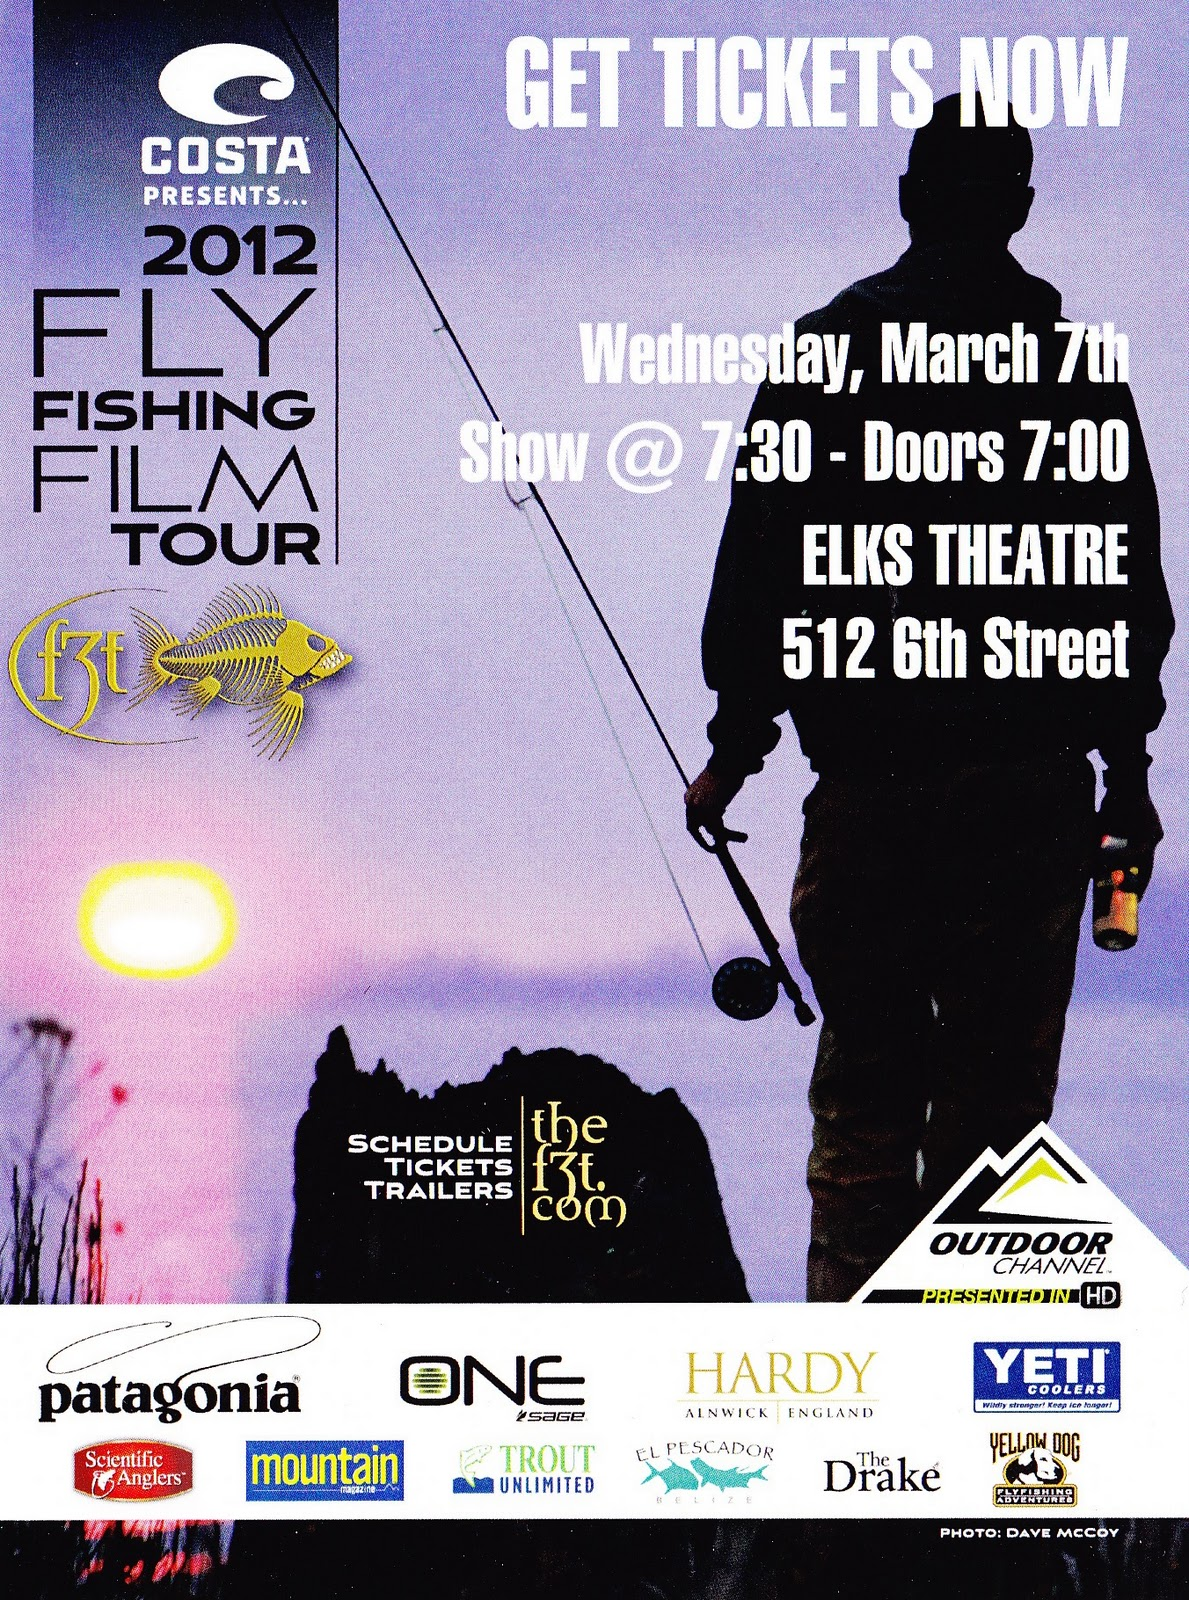 how to watch fly fishing film tour